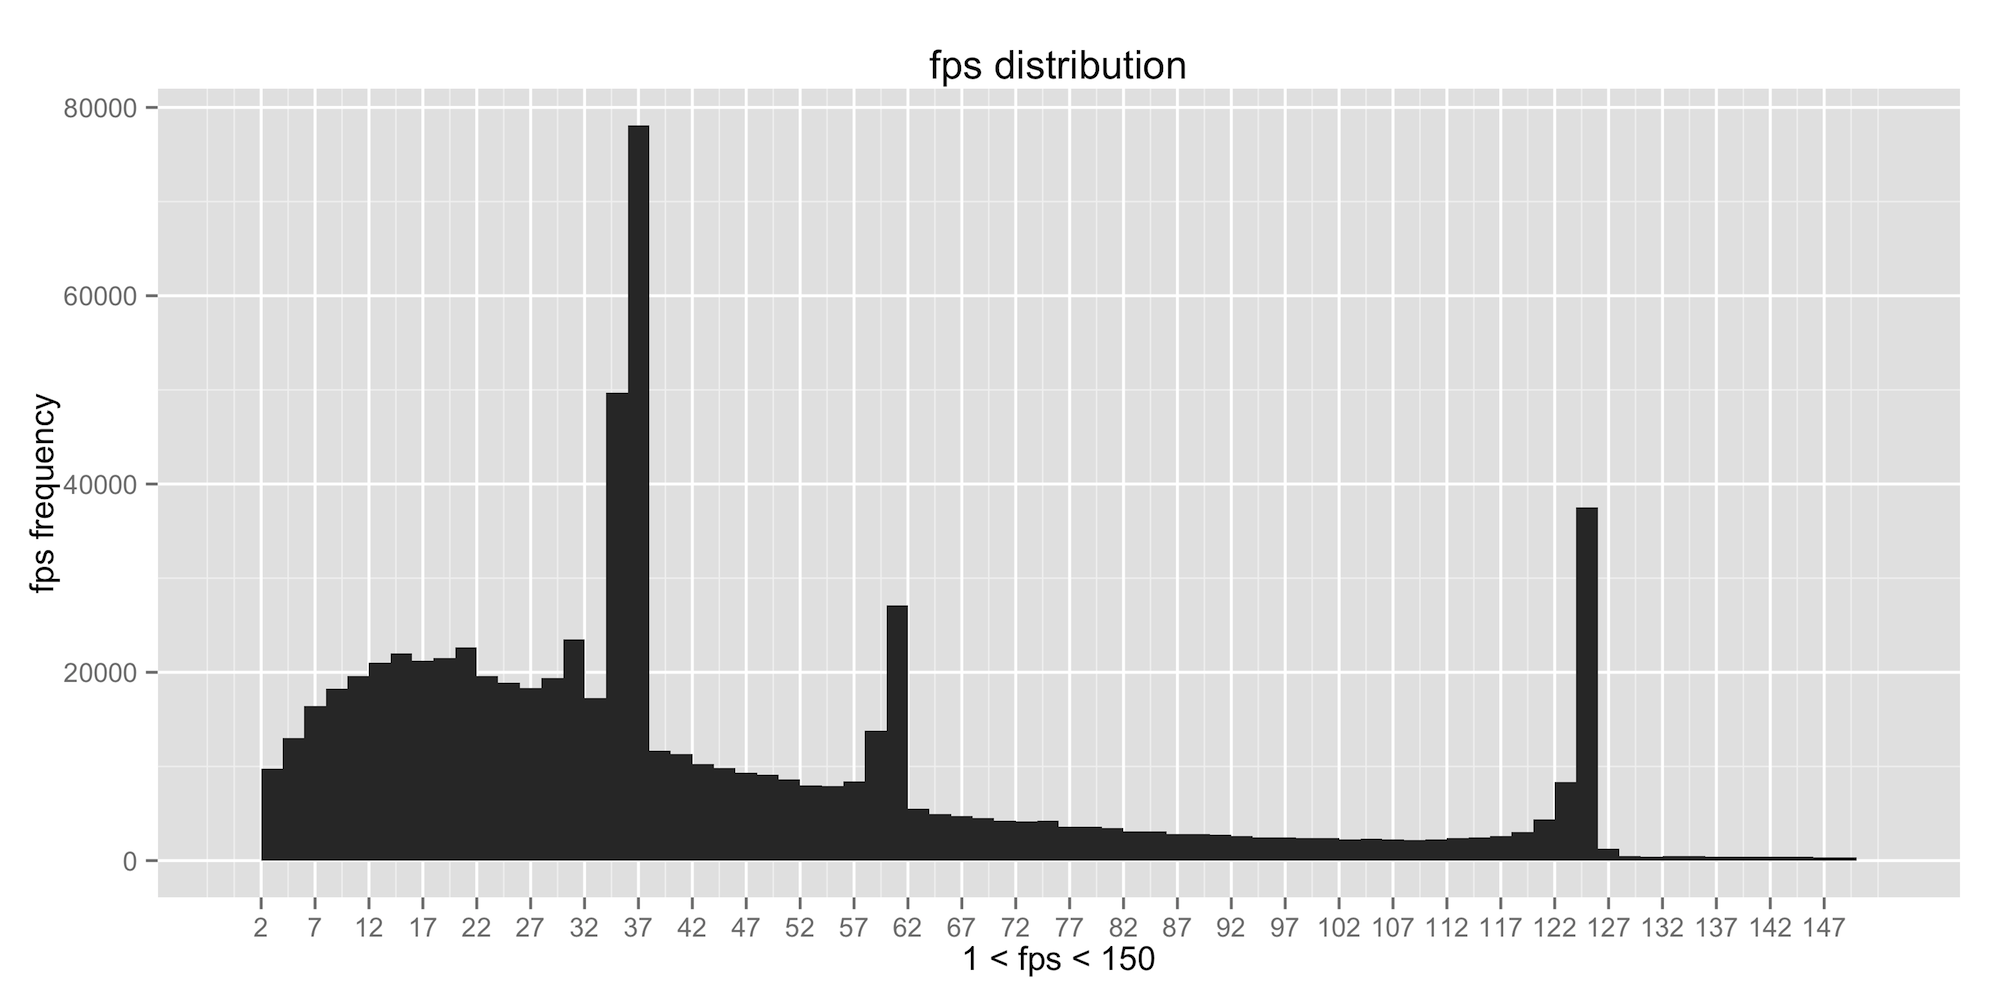 FPS Distribution